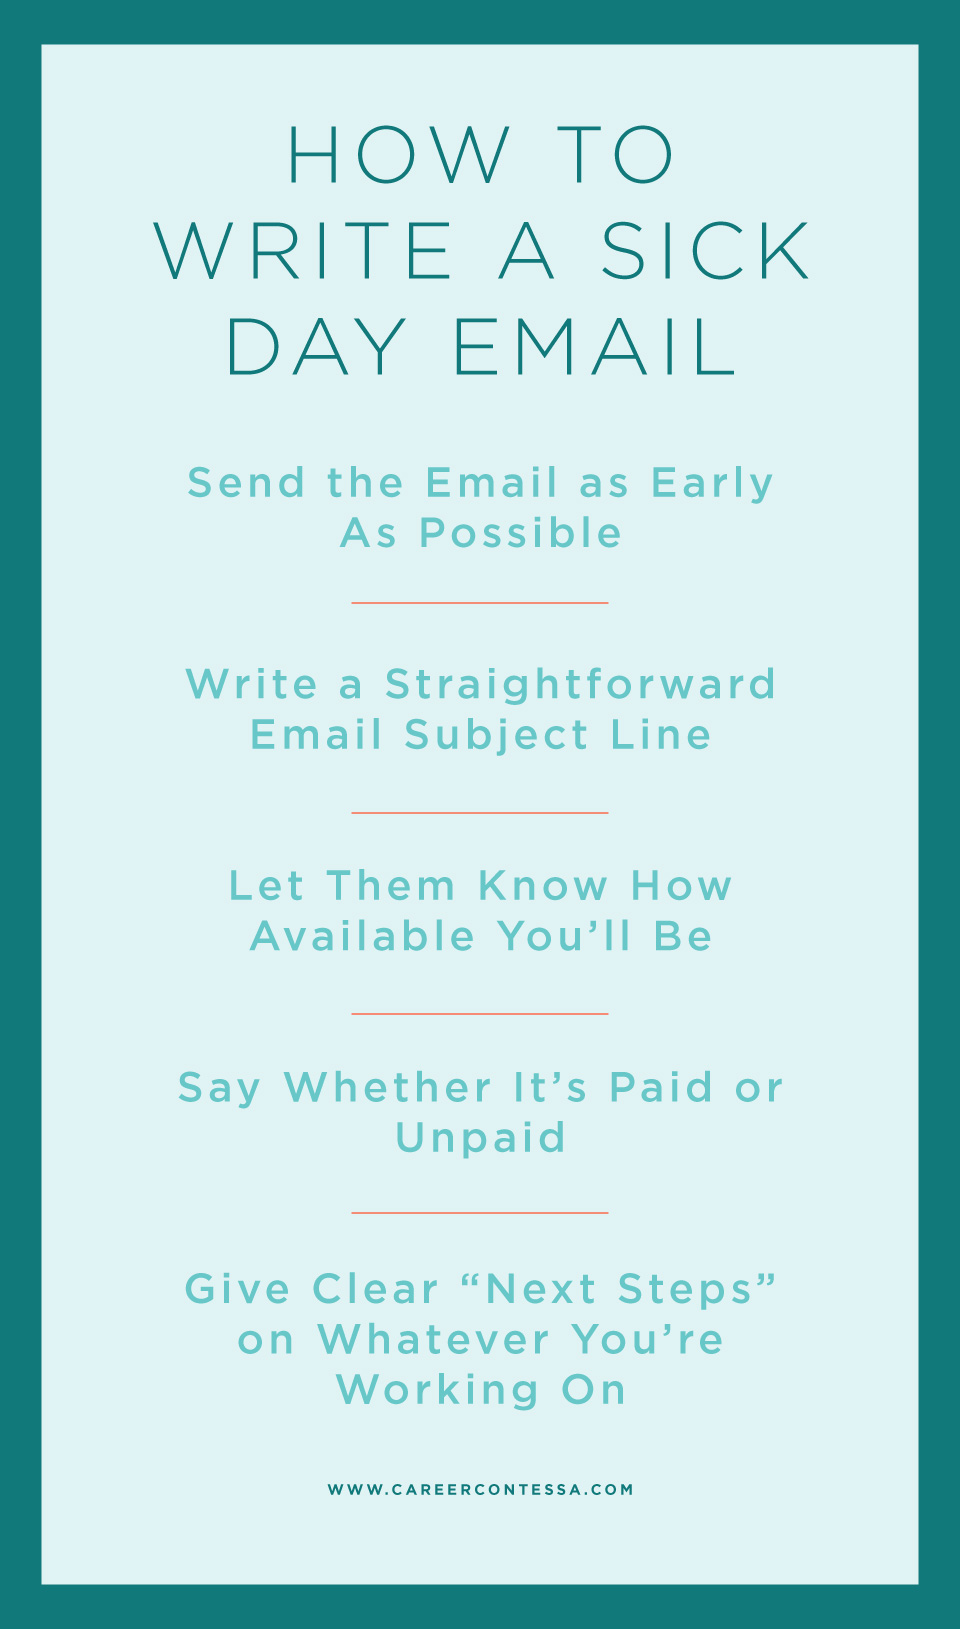 How To Write A Sick Day Email A Template Career Contessa In 2020 Email Subject Lines Career Contessa Job Interview Tips